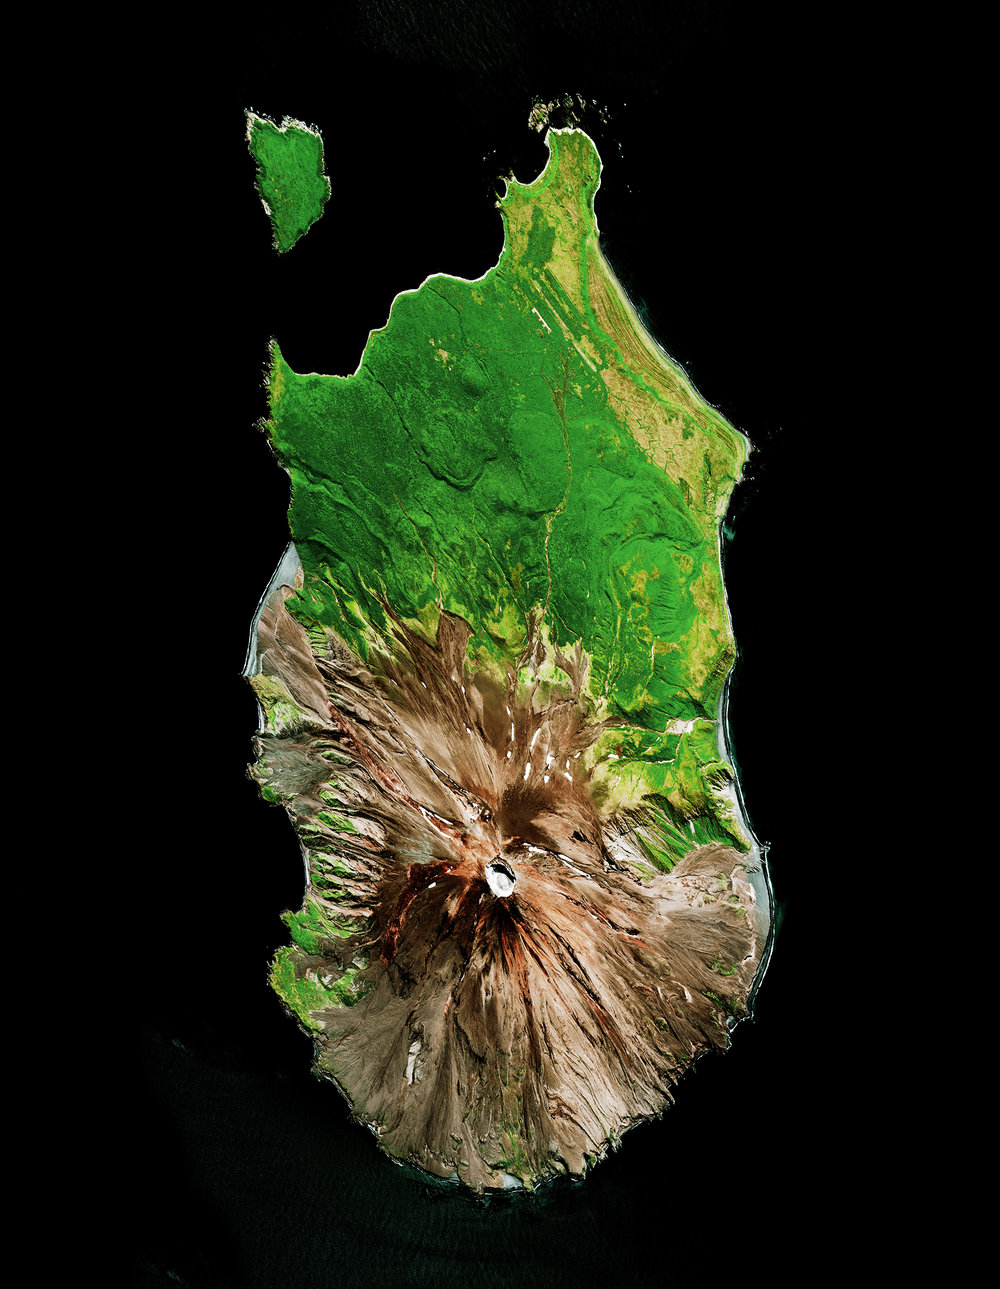 4/14/2017 Sarychev Peak Matua Island, Russia 48.090798, 153.199718 Sarychev Peak is located on Matua Island in the Kuril Islands of Russia. When the volcano erupted June on 11, 2009, the expulsion of debris caused significant interruption with air traffic between east Asia and North America. The eruption was also so great that astronauts aboard the International Space Station were able to photograph the plumes of ash and smoke rising from its cone as the force of its shock waves dispersed all clouds out of the line of sight. Source imagery: DigitalGlobe